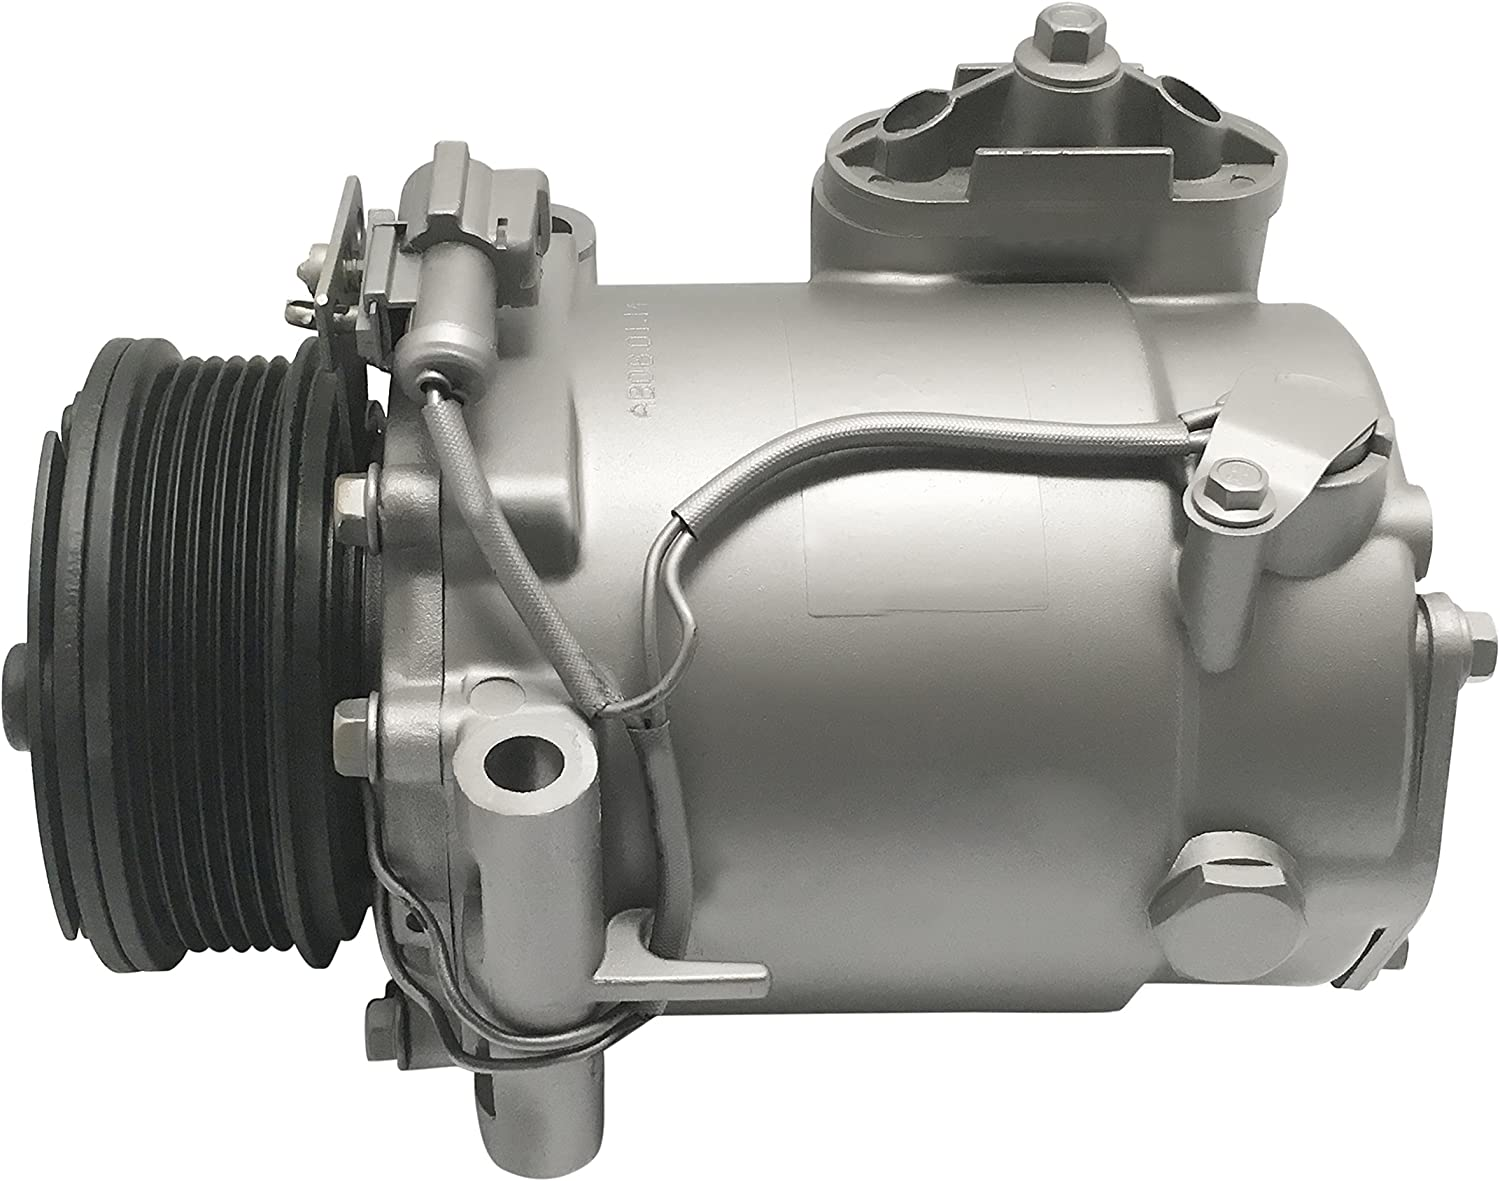 A//C Compressor For Nissan Altima 2002 2003 2004 2005 2006 2.5L Remanufactured